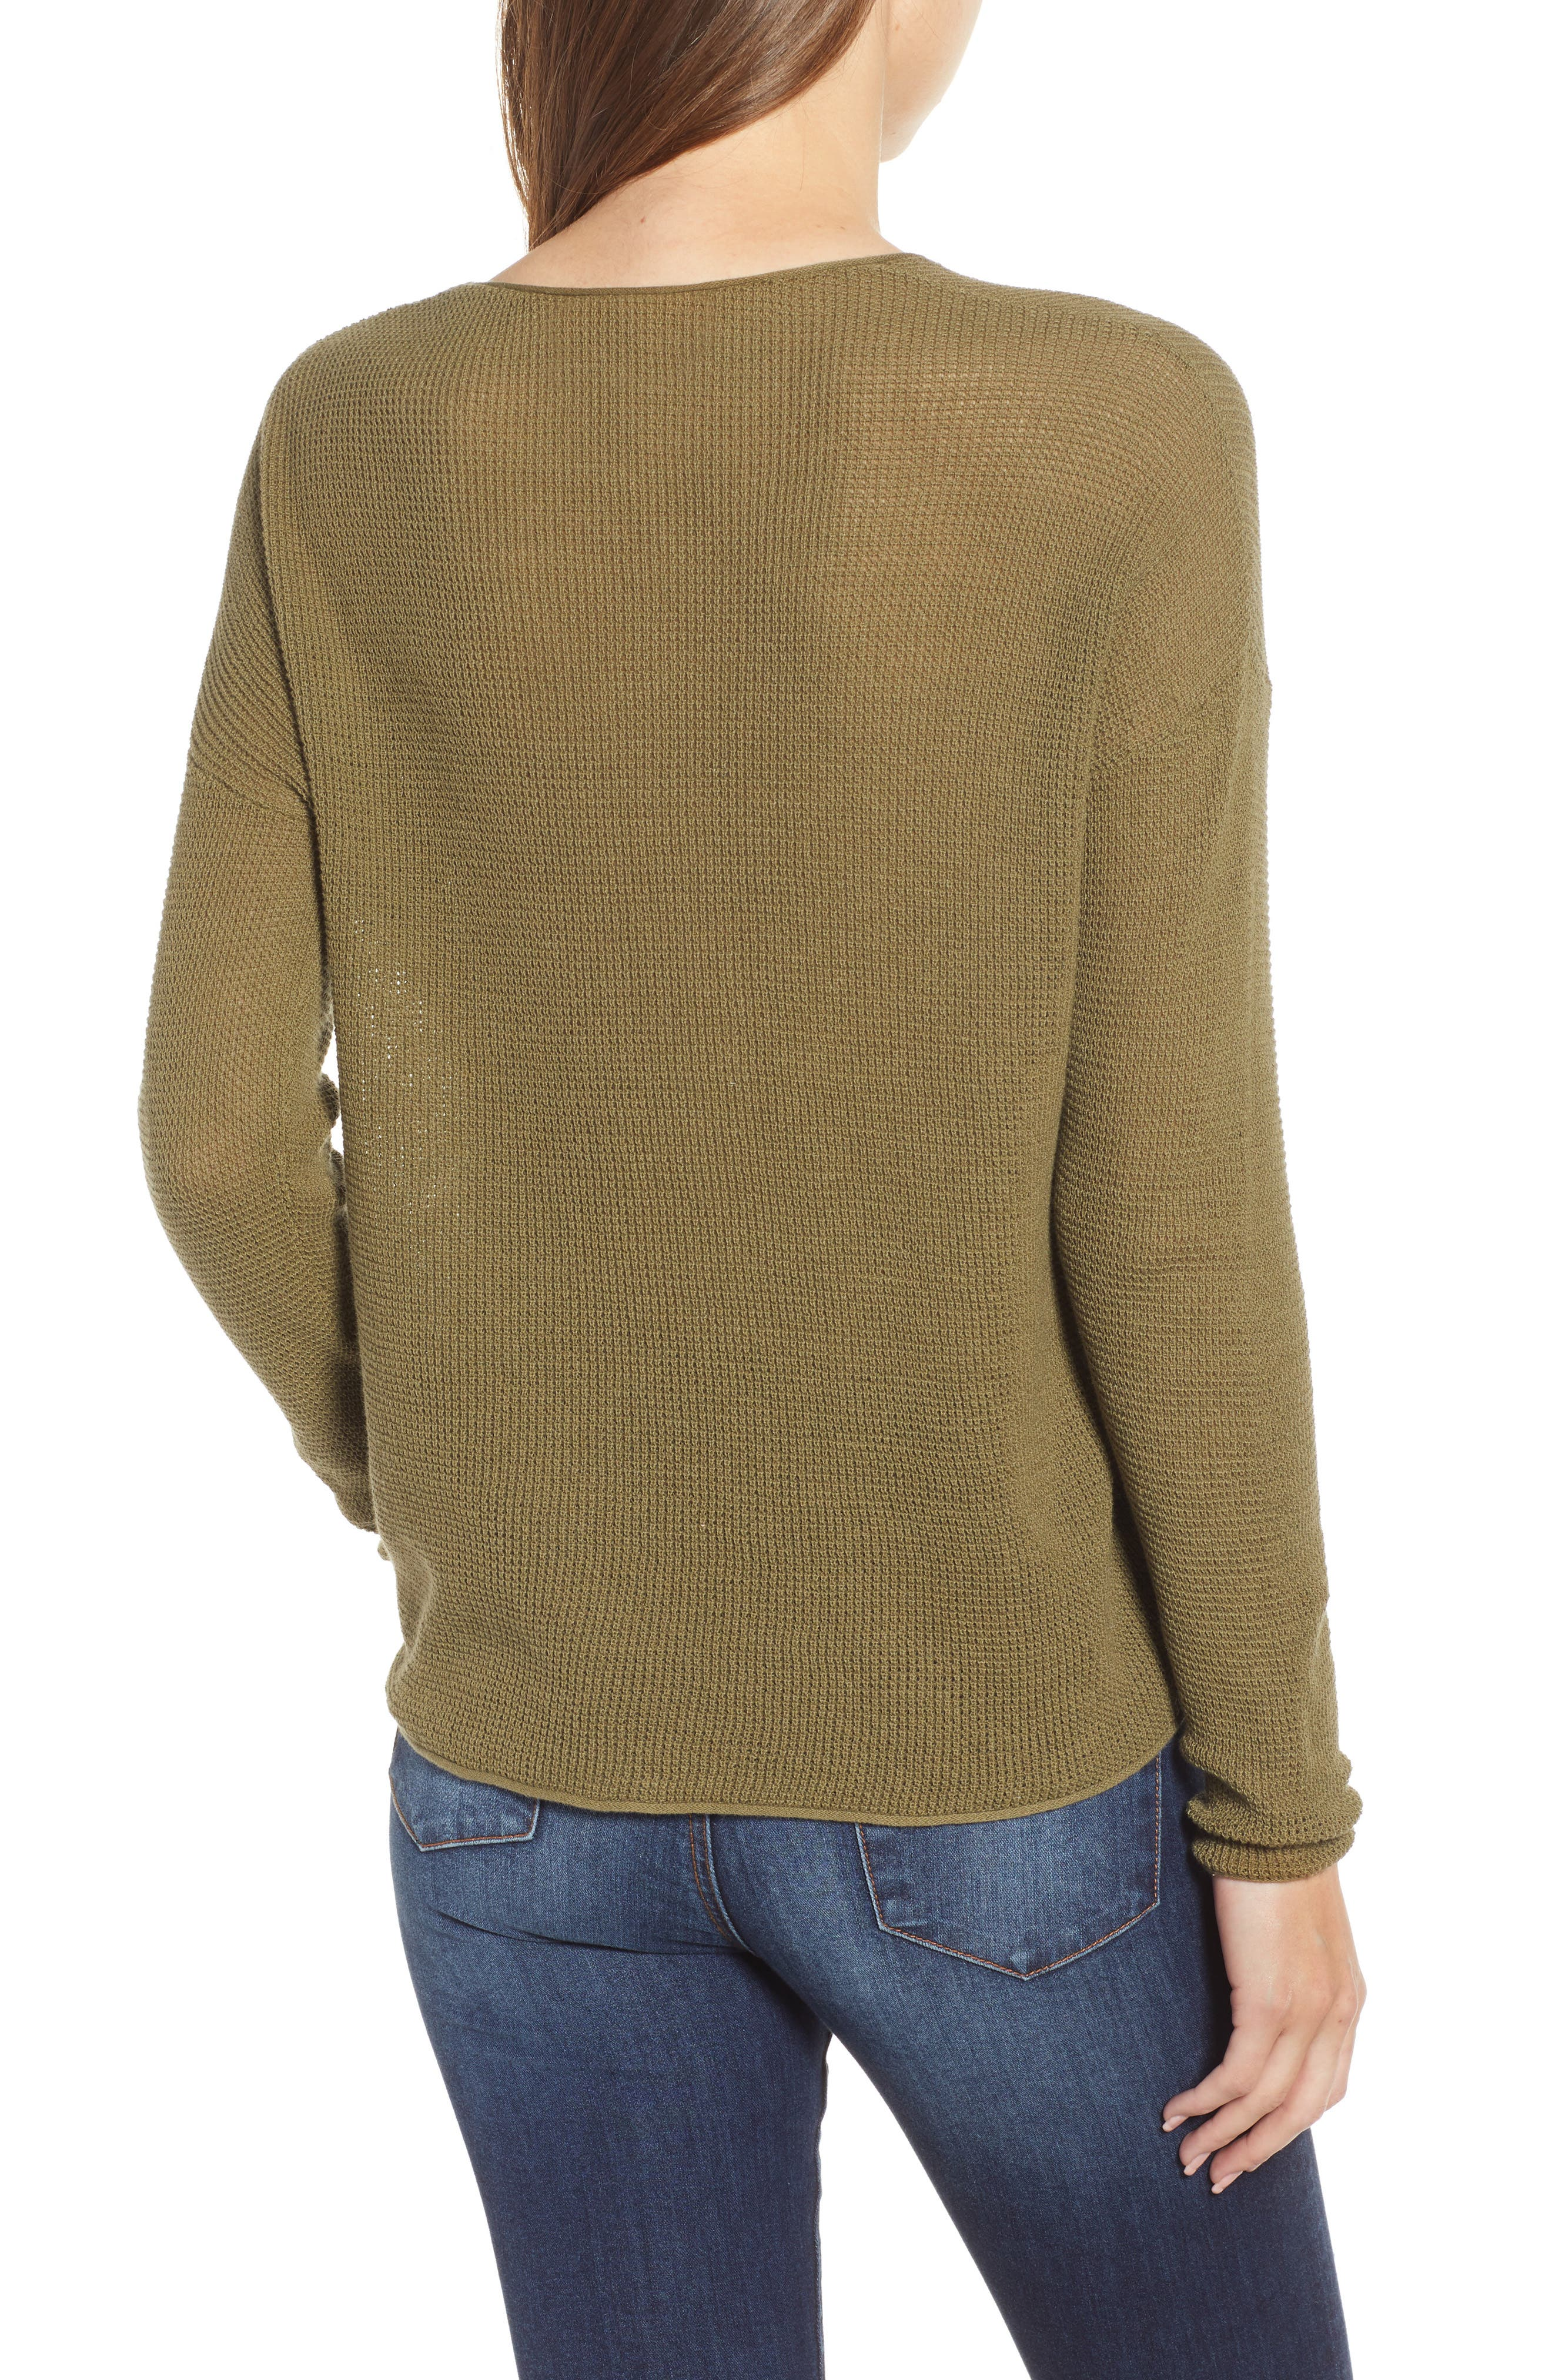 Coastal Thermal Sweater,                             Alternate thumbnail 3, color,                             OLIVE BURNT